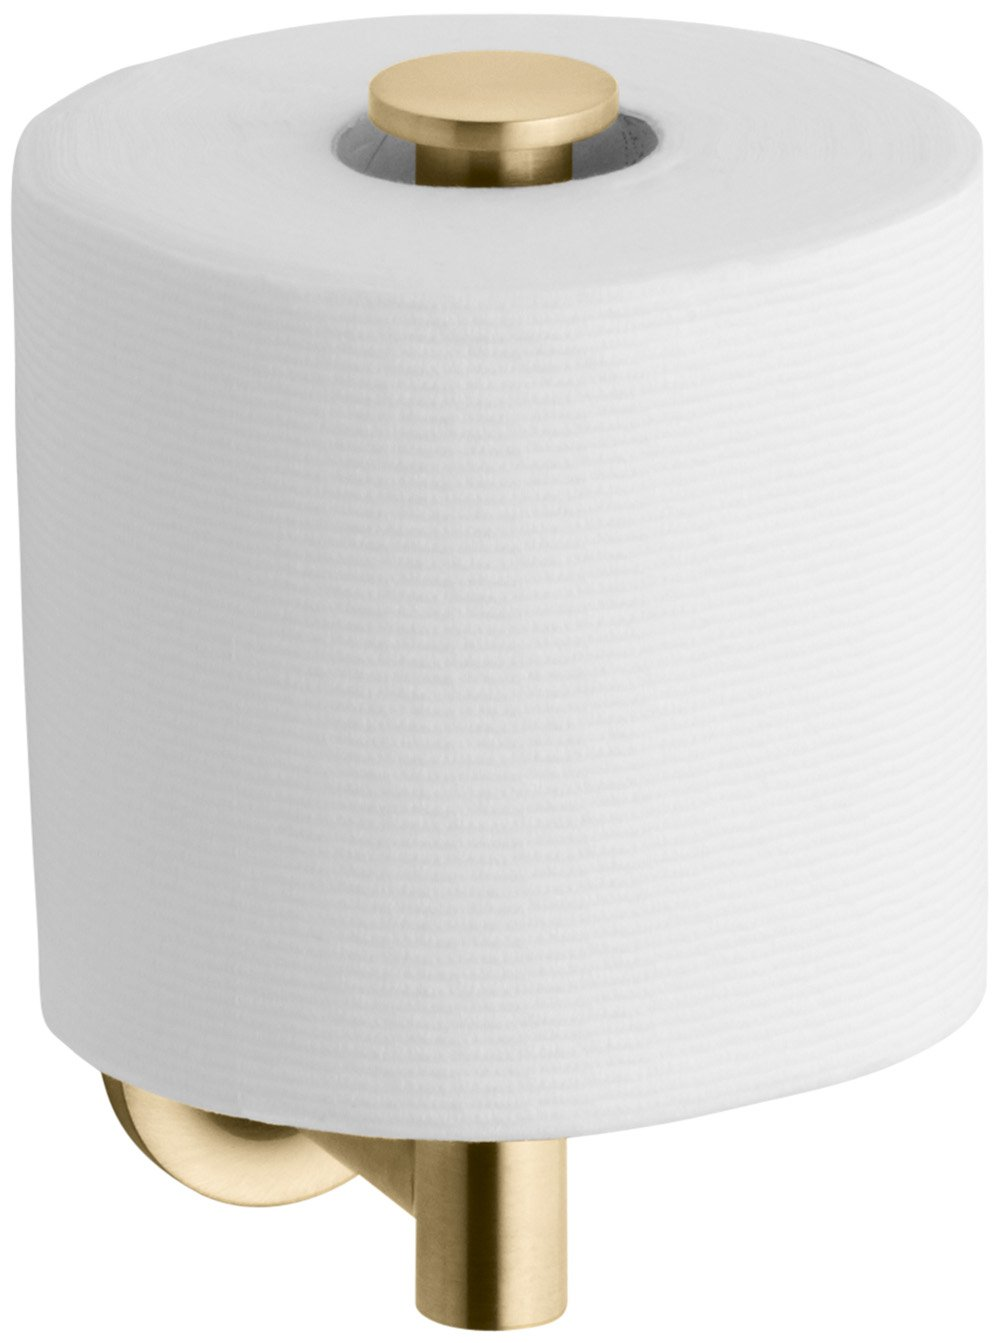 KOHLER K-14444-BGD Purist Vertical Toilet Tissue Holder, Vibrant Modern Brushed Gold